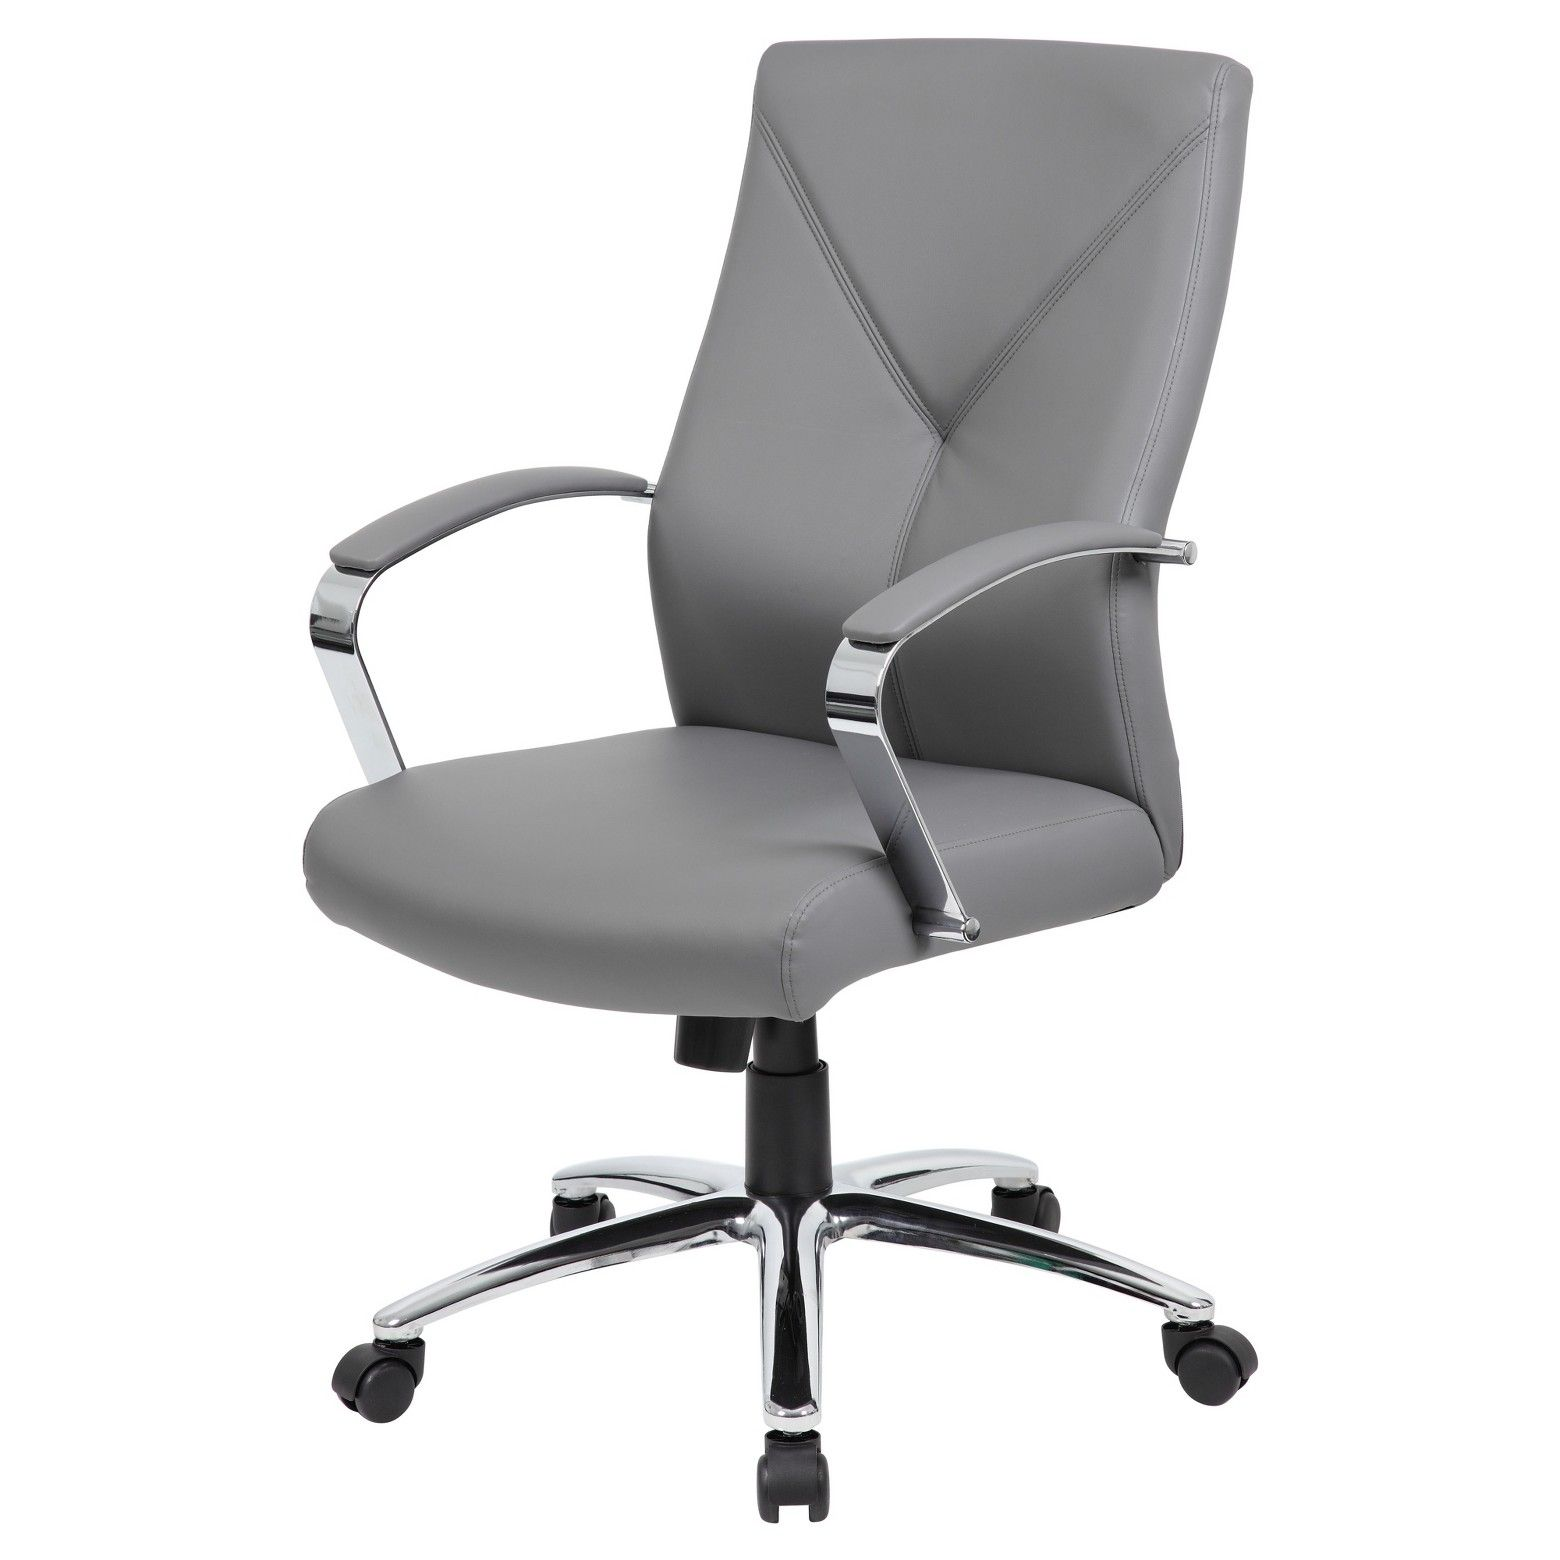 Contemporary Executive Office Chair Gray Boss Executive Office Chairs Home Office Chairs Modern Office Chair